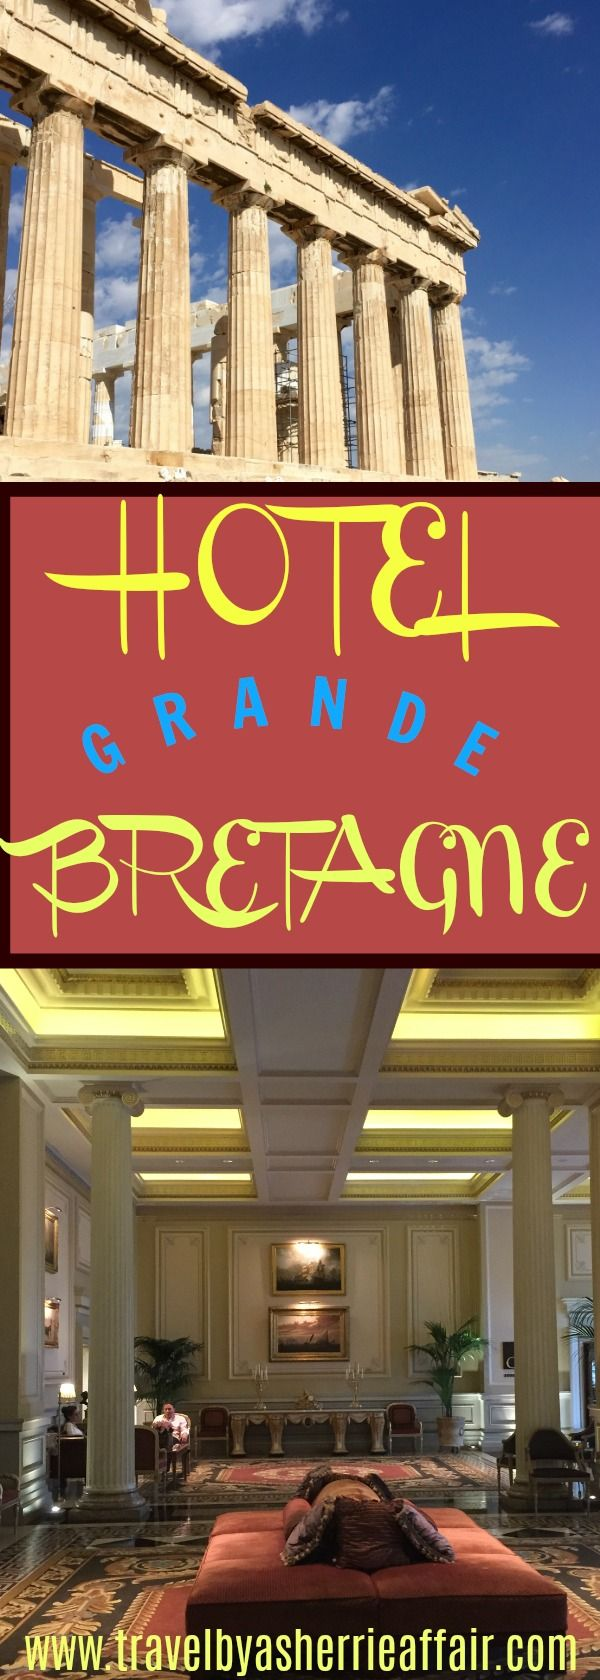 The Grande Hotel Bretagne, a luxury hotel in the heart of Athens Greece.  Beautiful and Stunning views from your hotel room and the roof top restaurant.  Friendly and luxurious atmosphere.